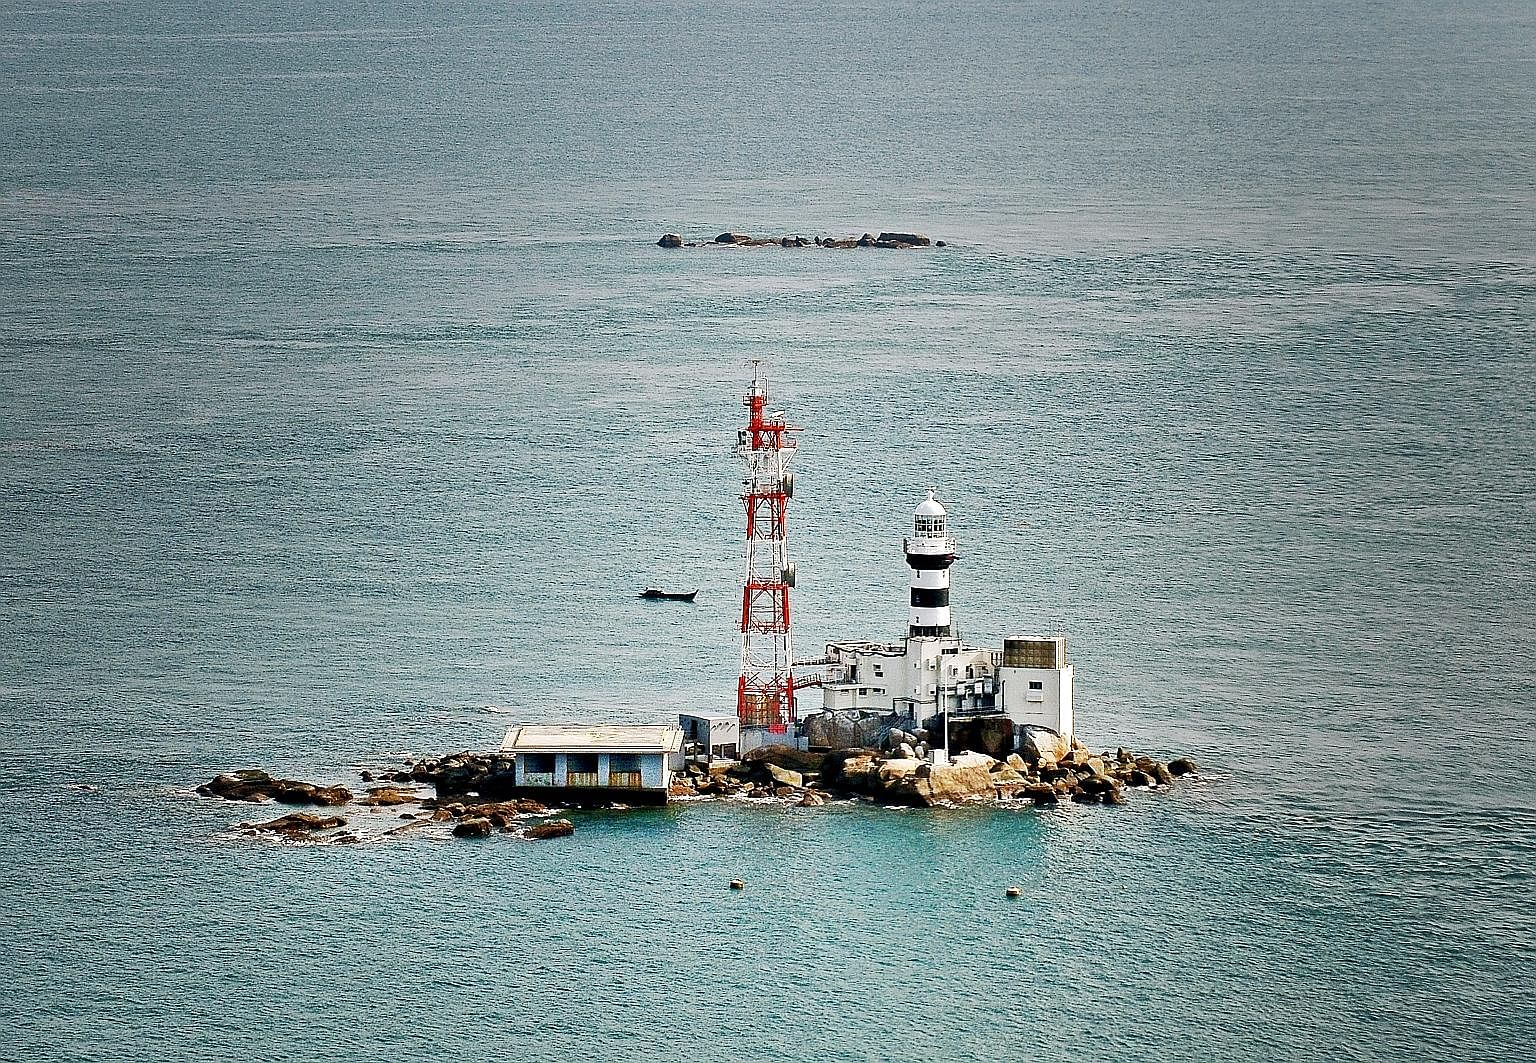 """Singapore argued that the """"new facts"""" Malaysia relied on were already known to Malaysia - its legal team had made full arguments before the ICJ on such """"facts"""" in the original case over the sovereignty of Pedra Branca (above)."""